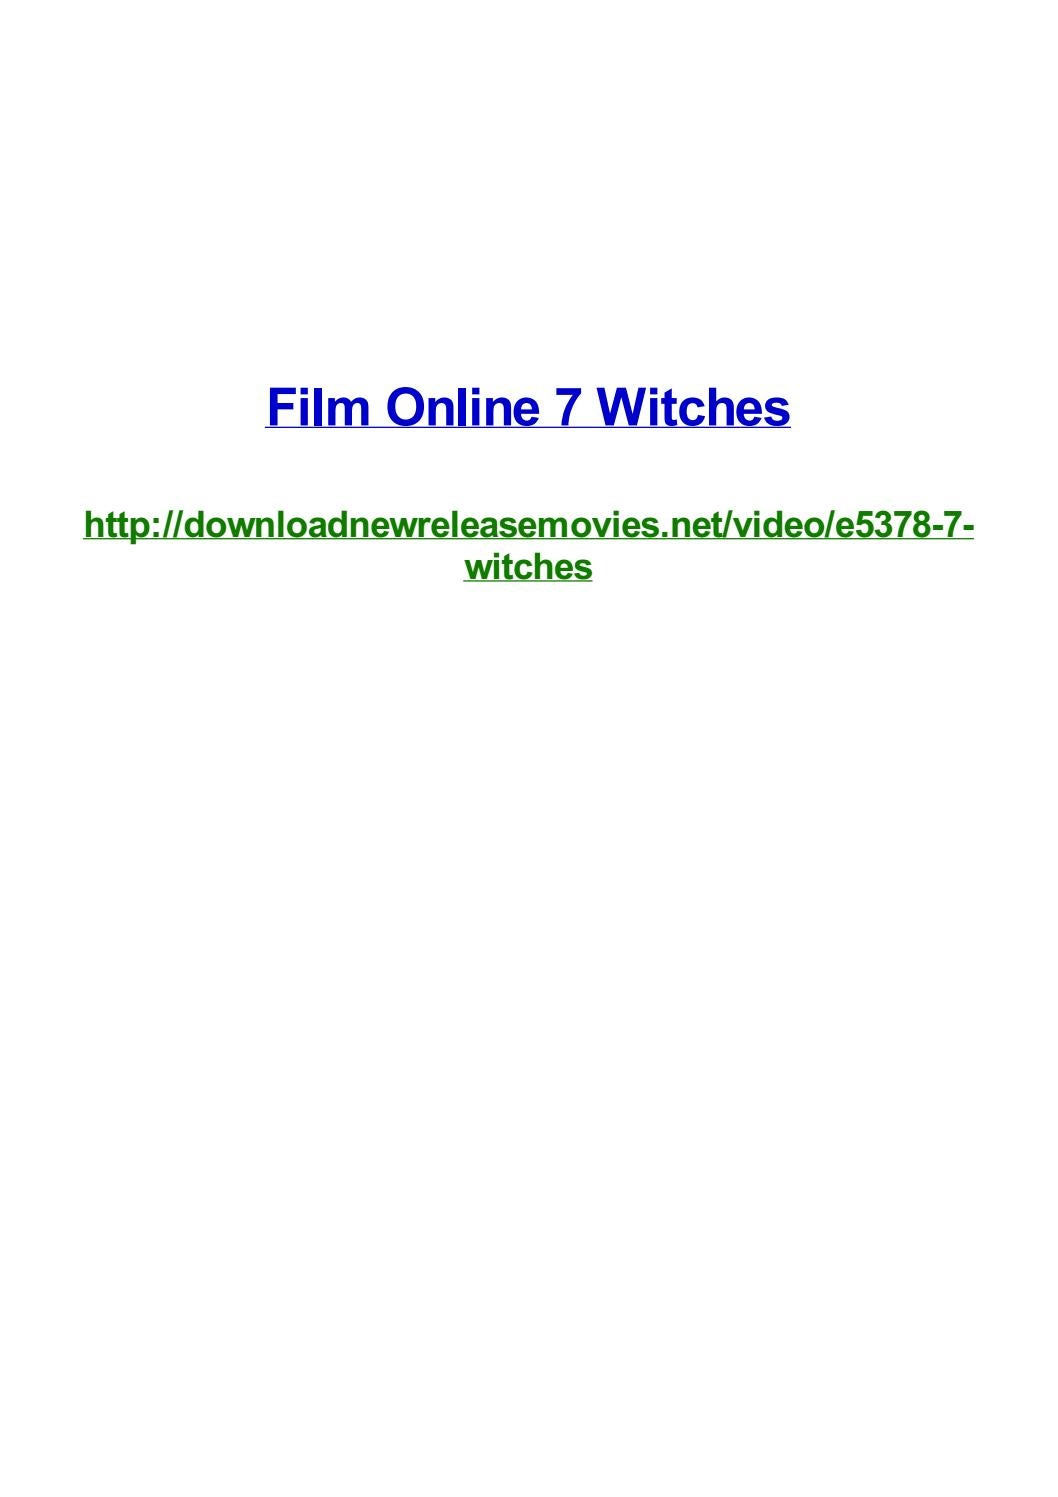 Film online 7 witches by Frank Seamons - issuu